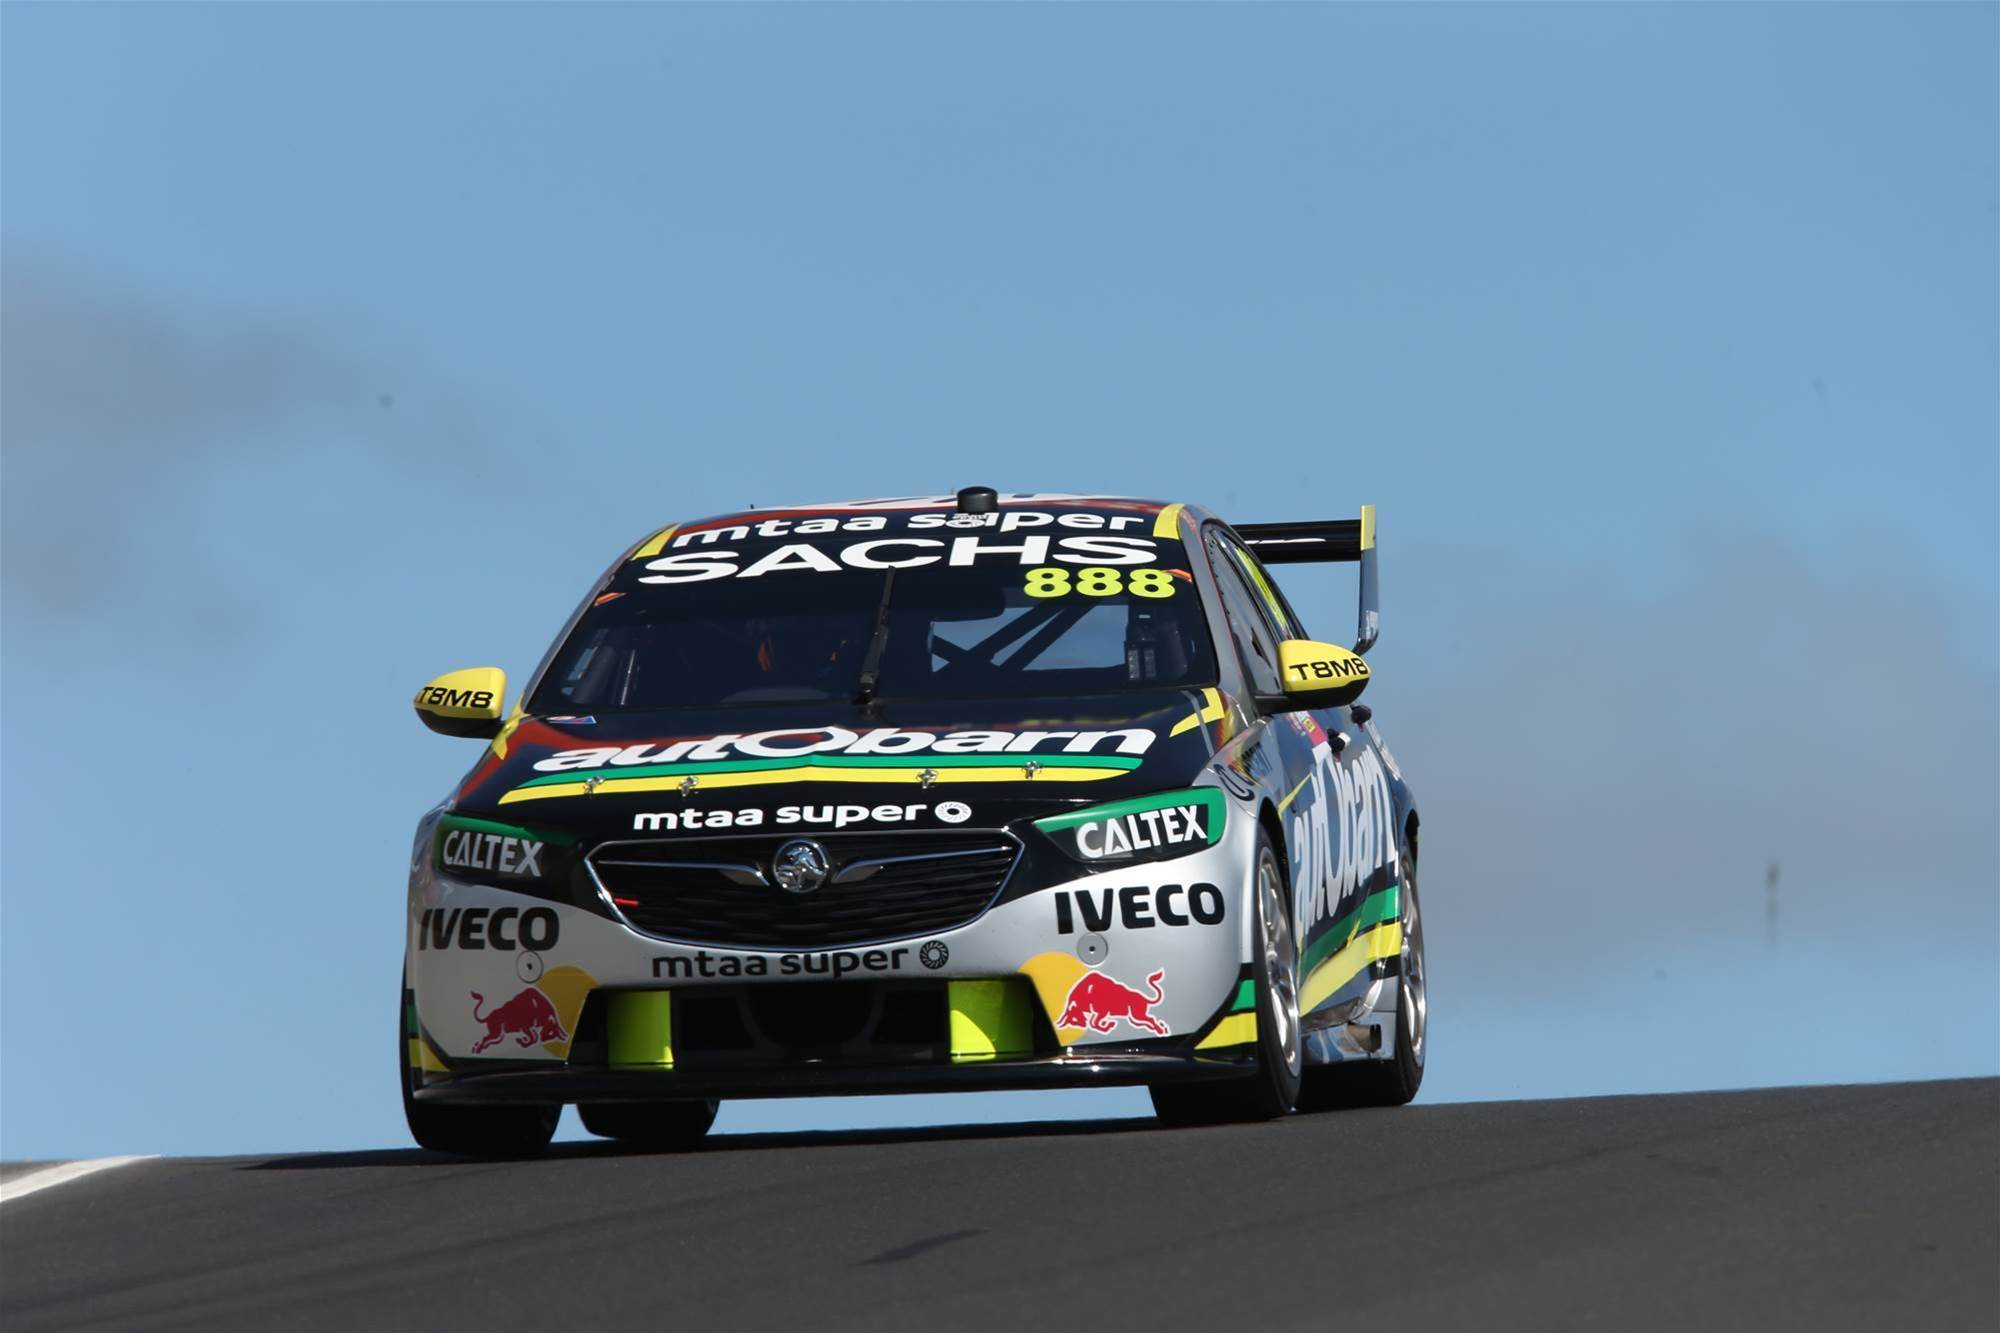 Pic gallery: Bathurst 1000